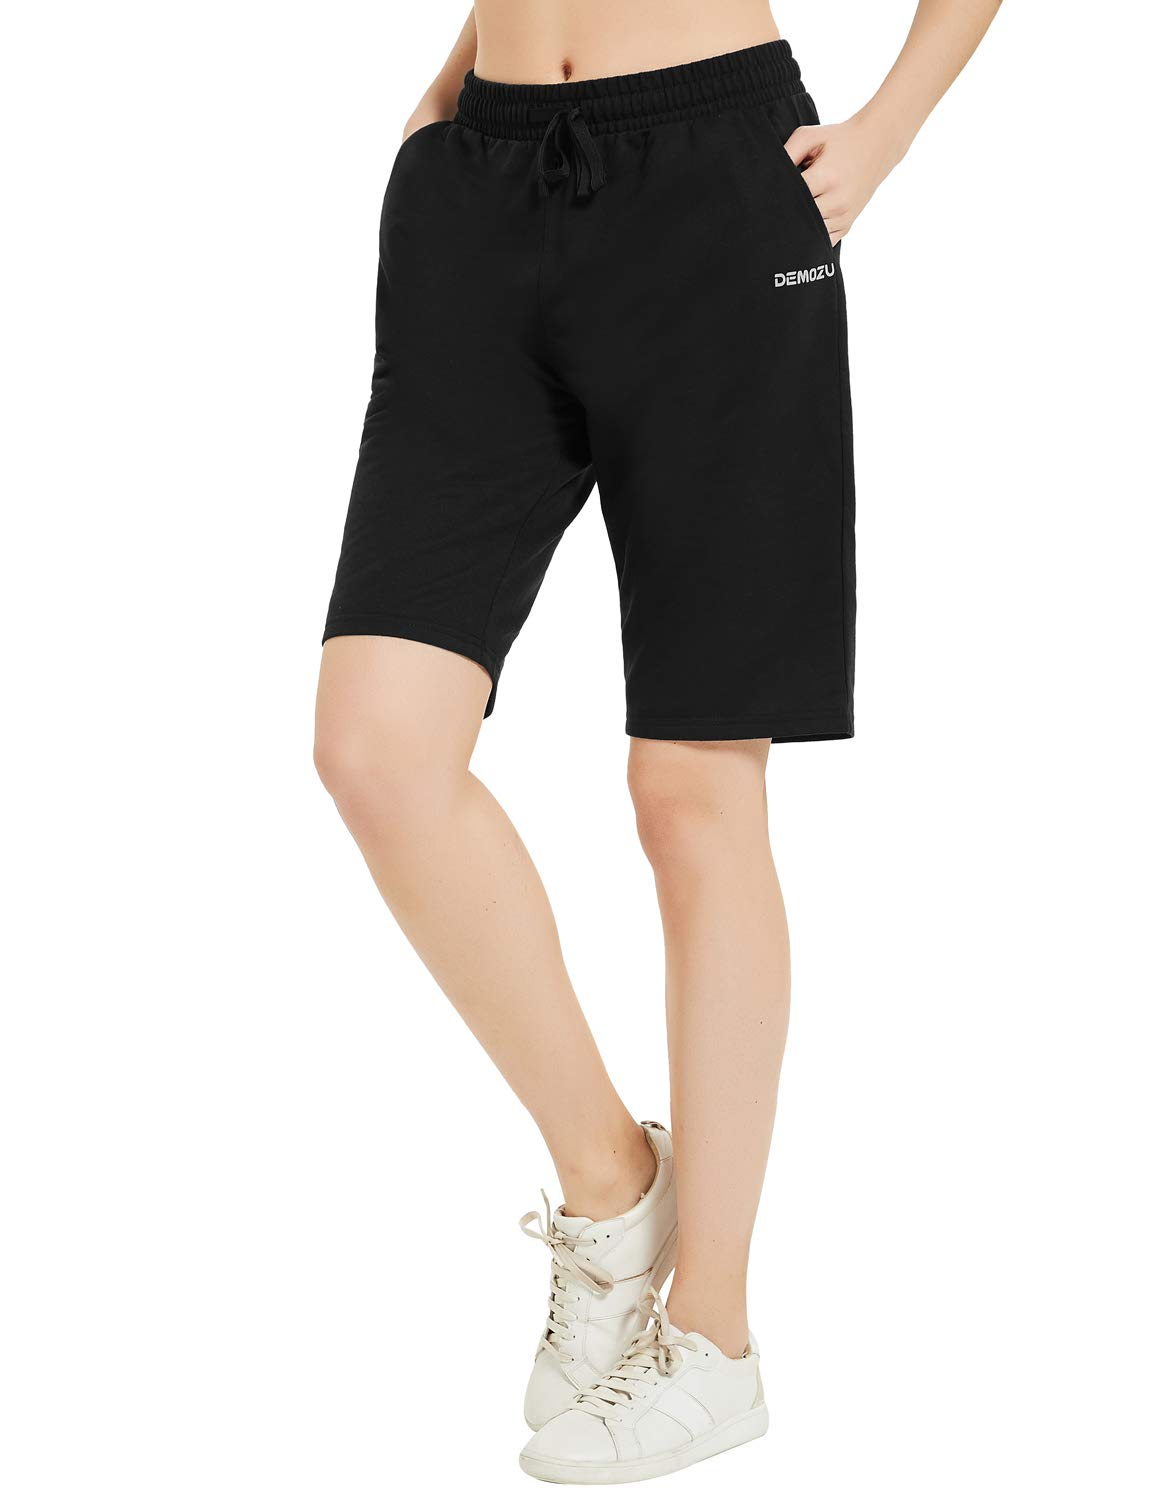 "DEMOZU Women's 5"" / 10"" Active Lounge Bermuda Shorts Knit Shorts with Pockets"